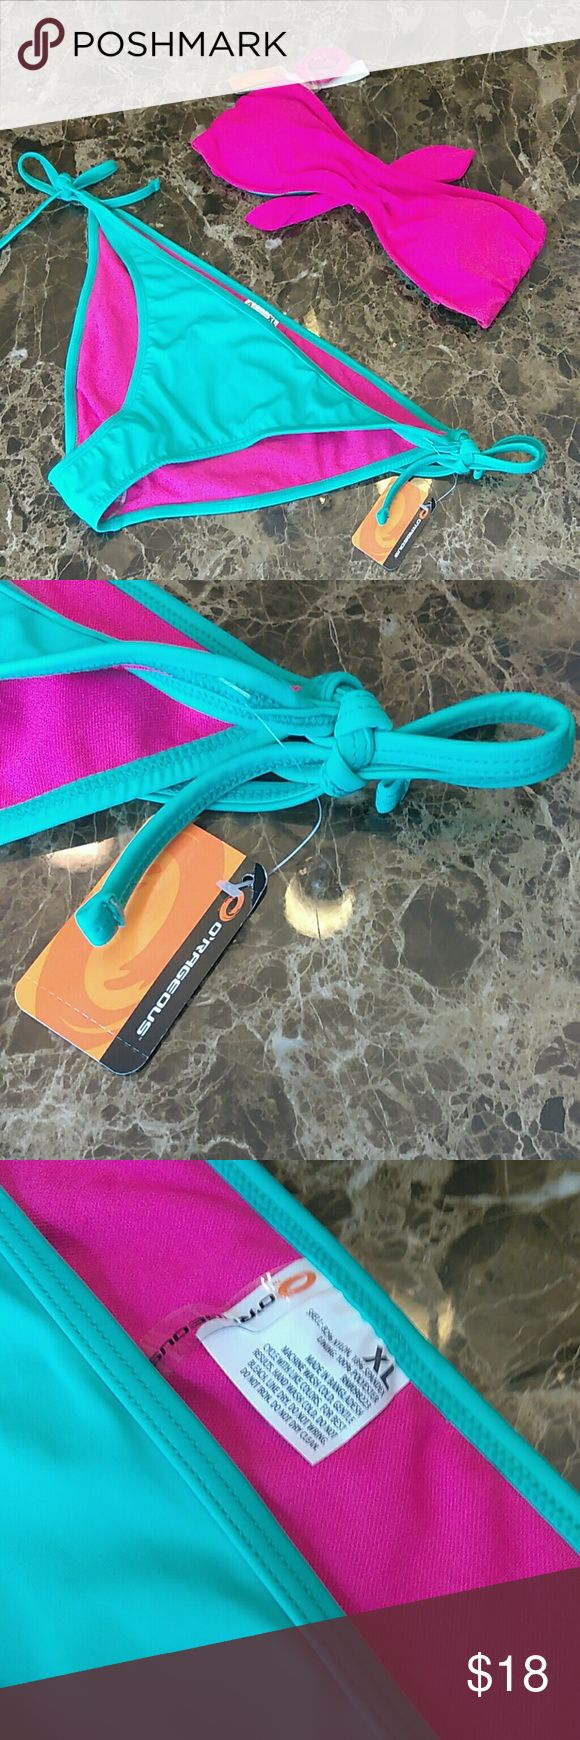 NWT Orageous 2 piece Pink & Mint bikini size XL NWT Orageous 2 piece Pink & Mint bikini size XL. Extra comfortable and stylish set. Stays very fresh and dry. Ready for summer days at the pool or beach. O'rageous Swim Bikinis